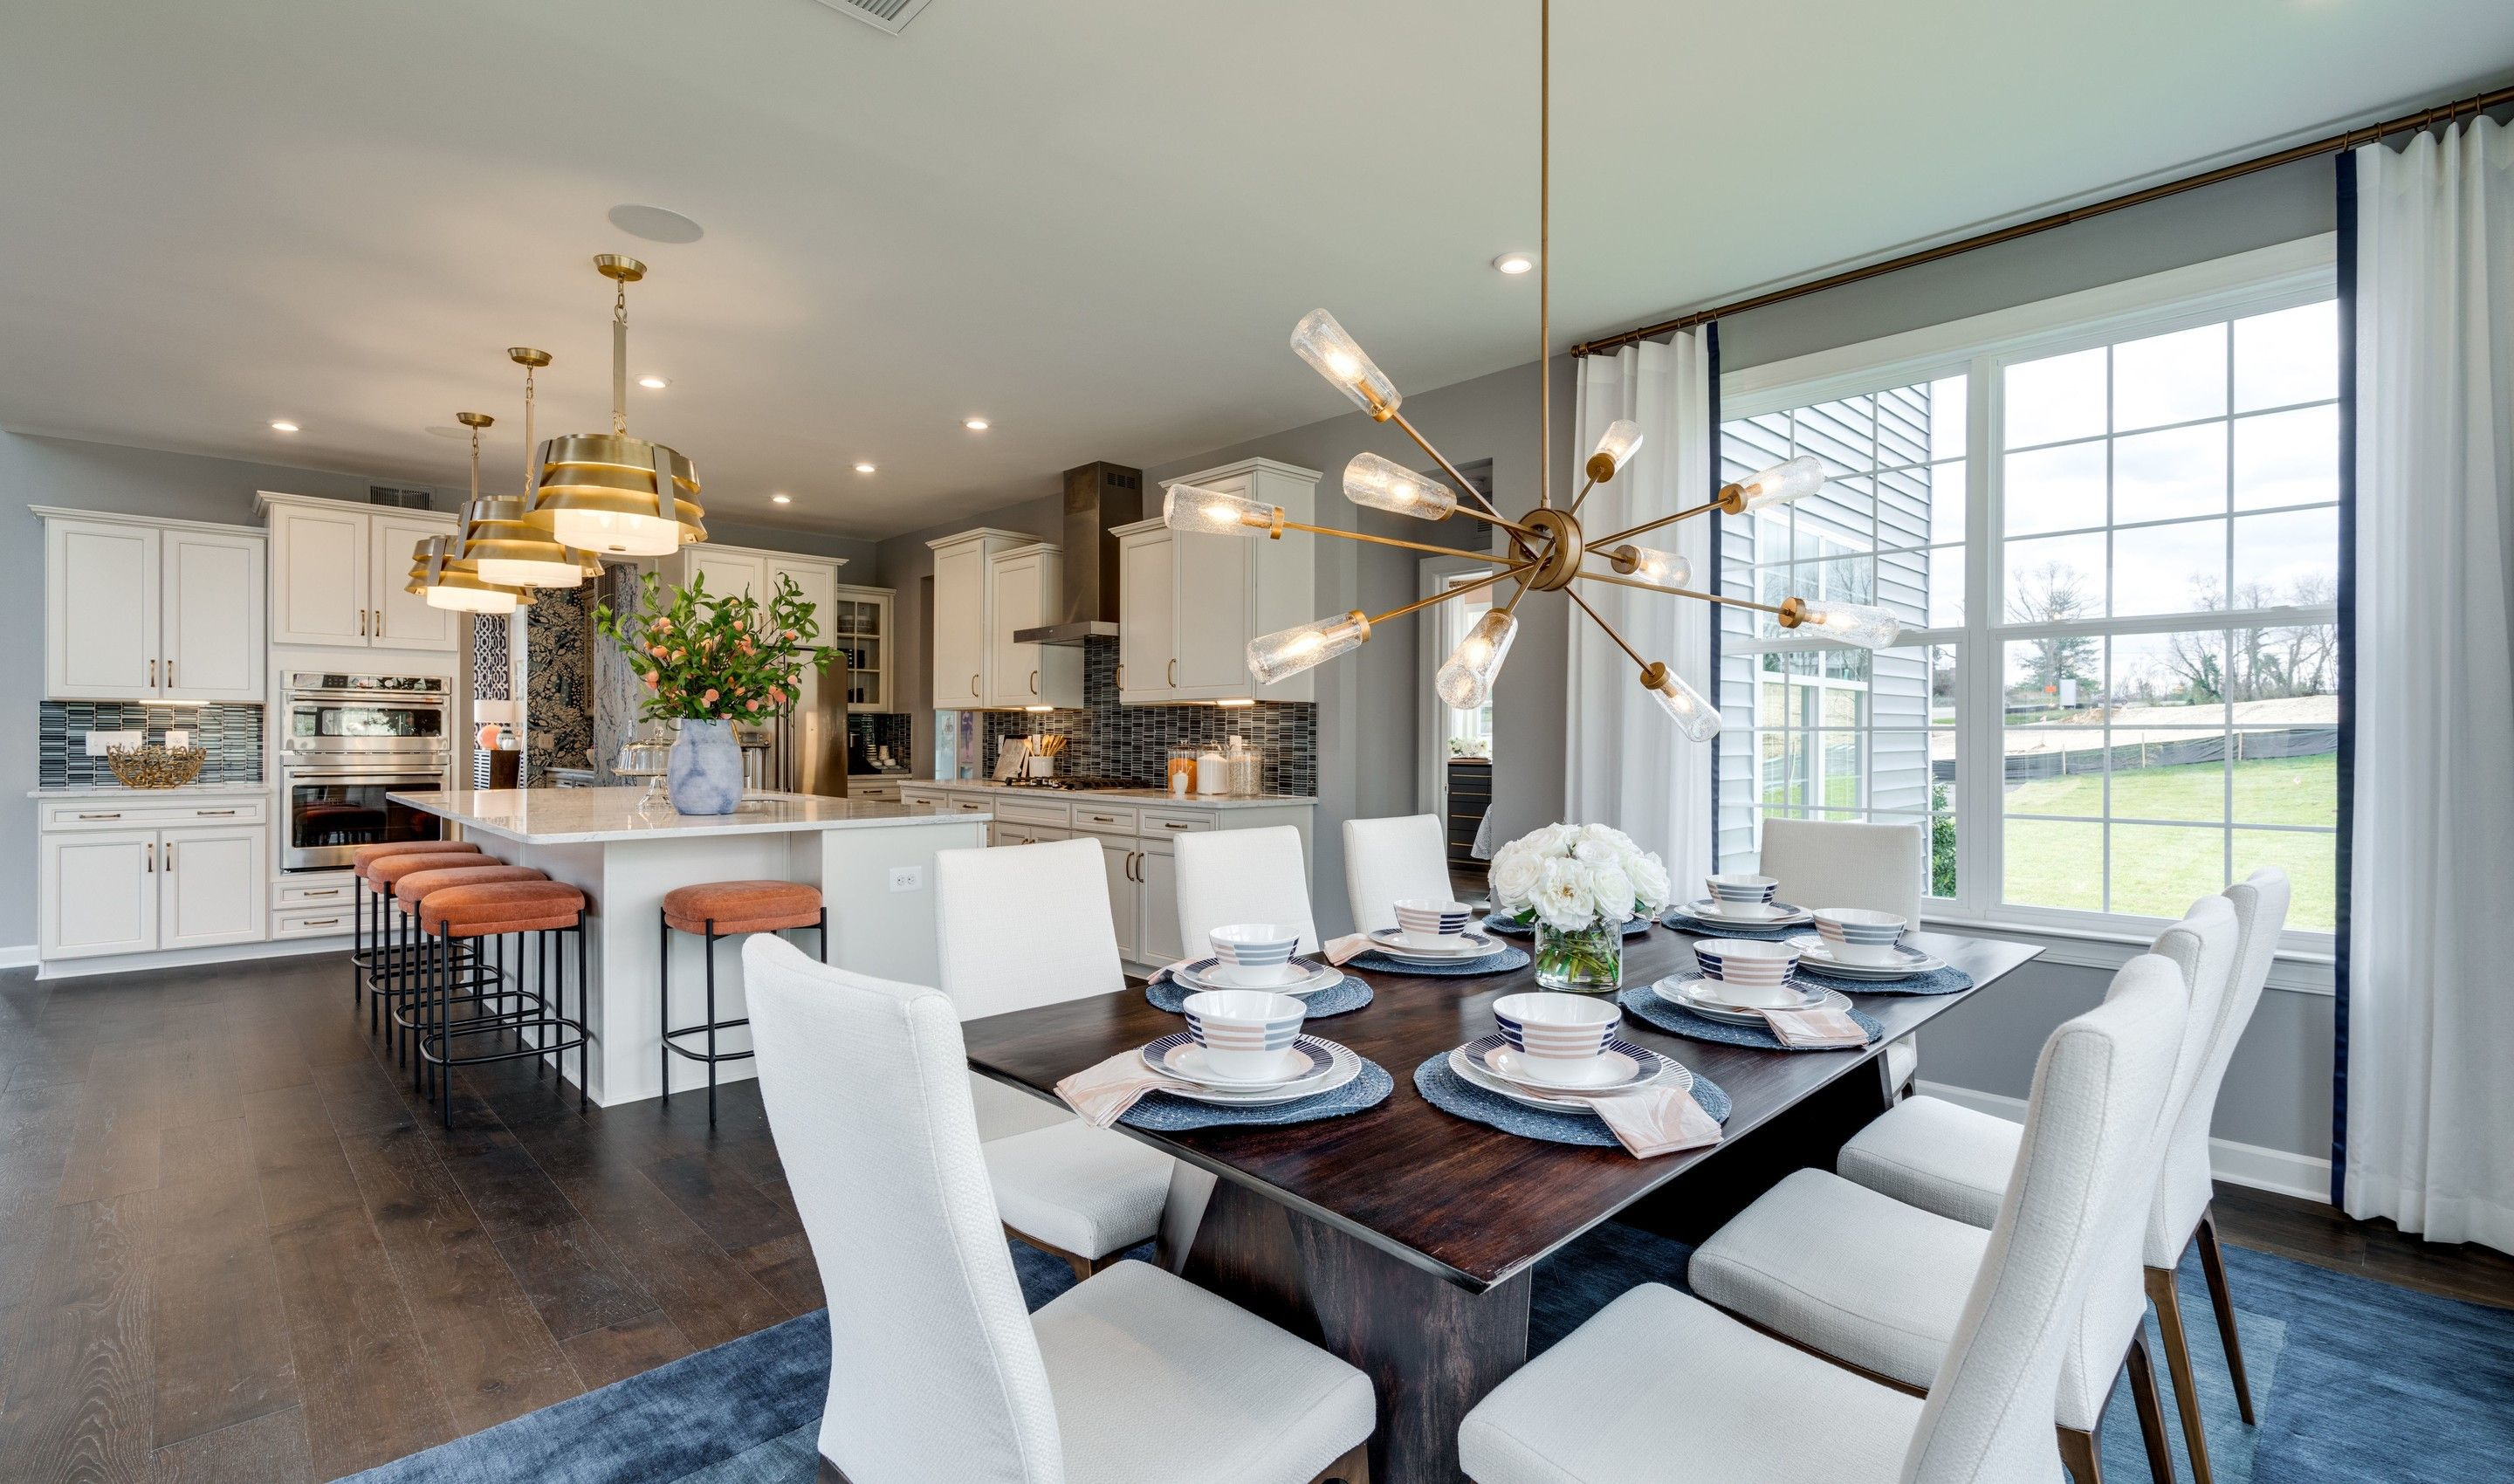 Kitchen featured in the Memphis II By K. Hovnanian® Homes in Washington, VA